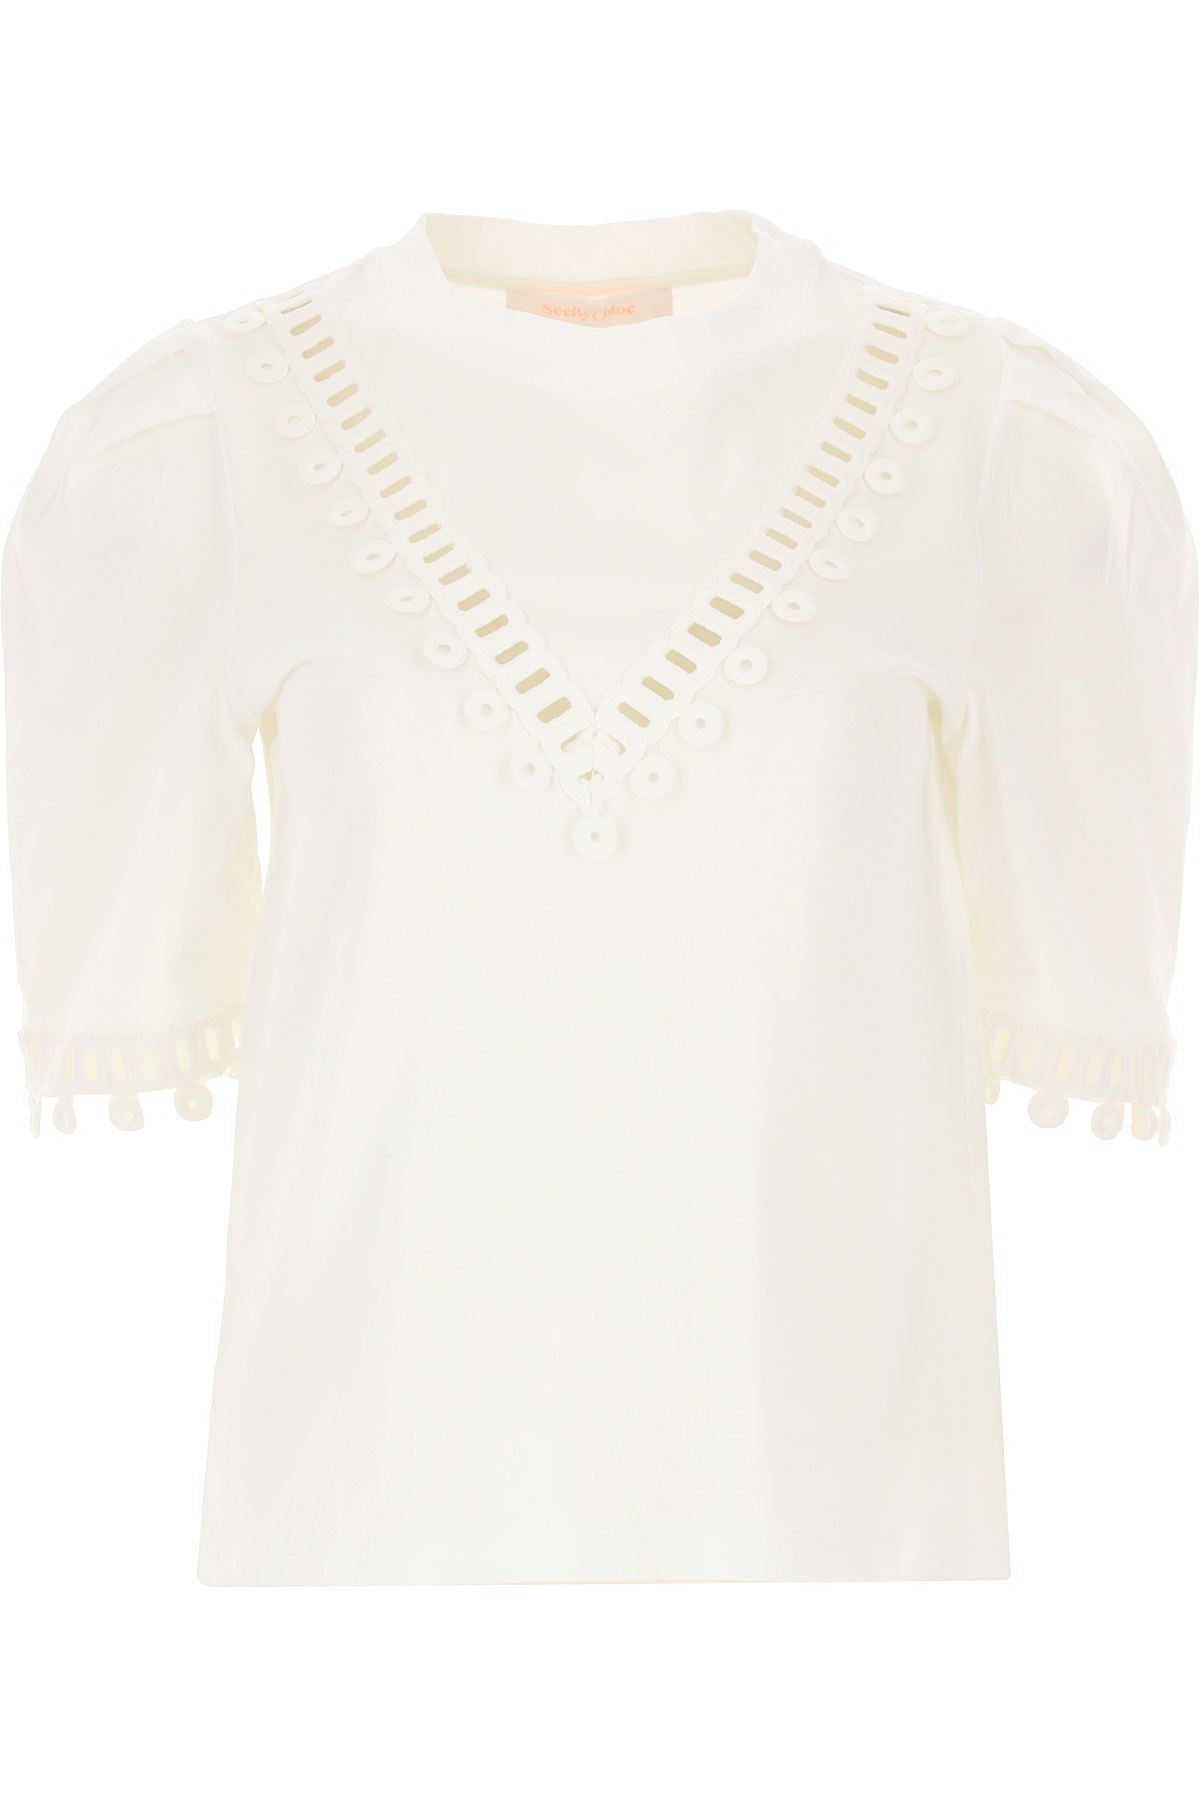 See By Chloe T-Shirt for Women On Sale, White, Cotton, 2019, 4 6